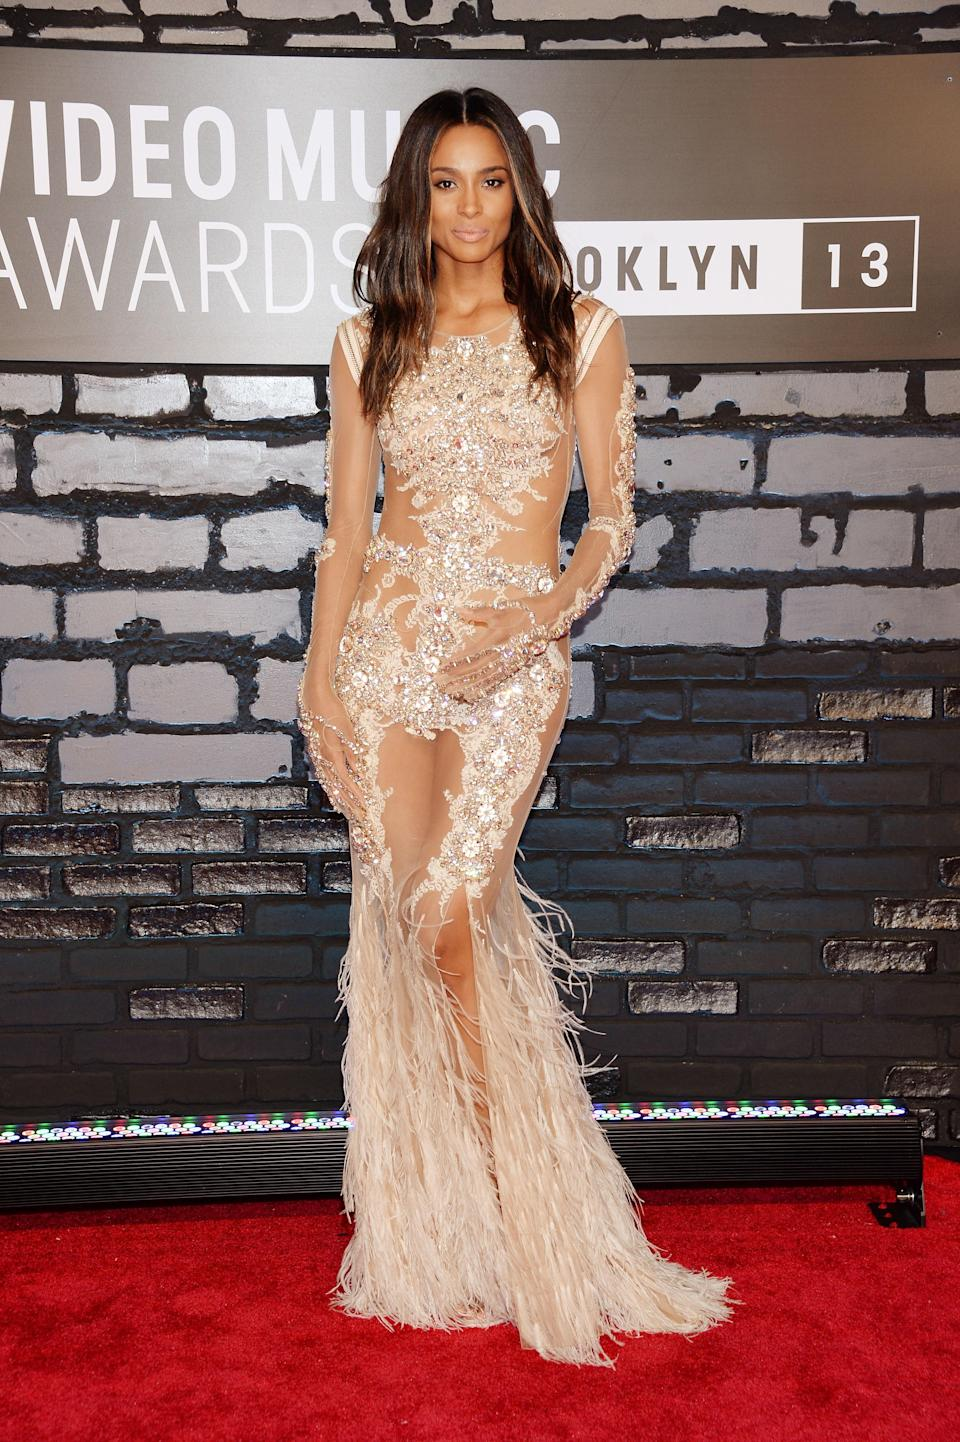 Ciara has had a longstanding love affair with Givenchy. This was one of her most luxurious looks from the fashion house.